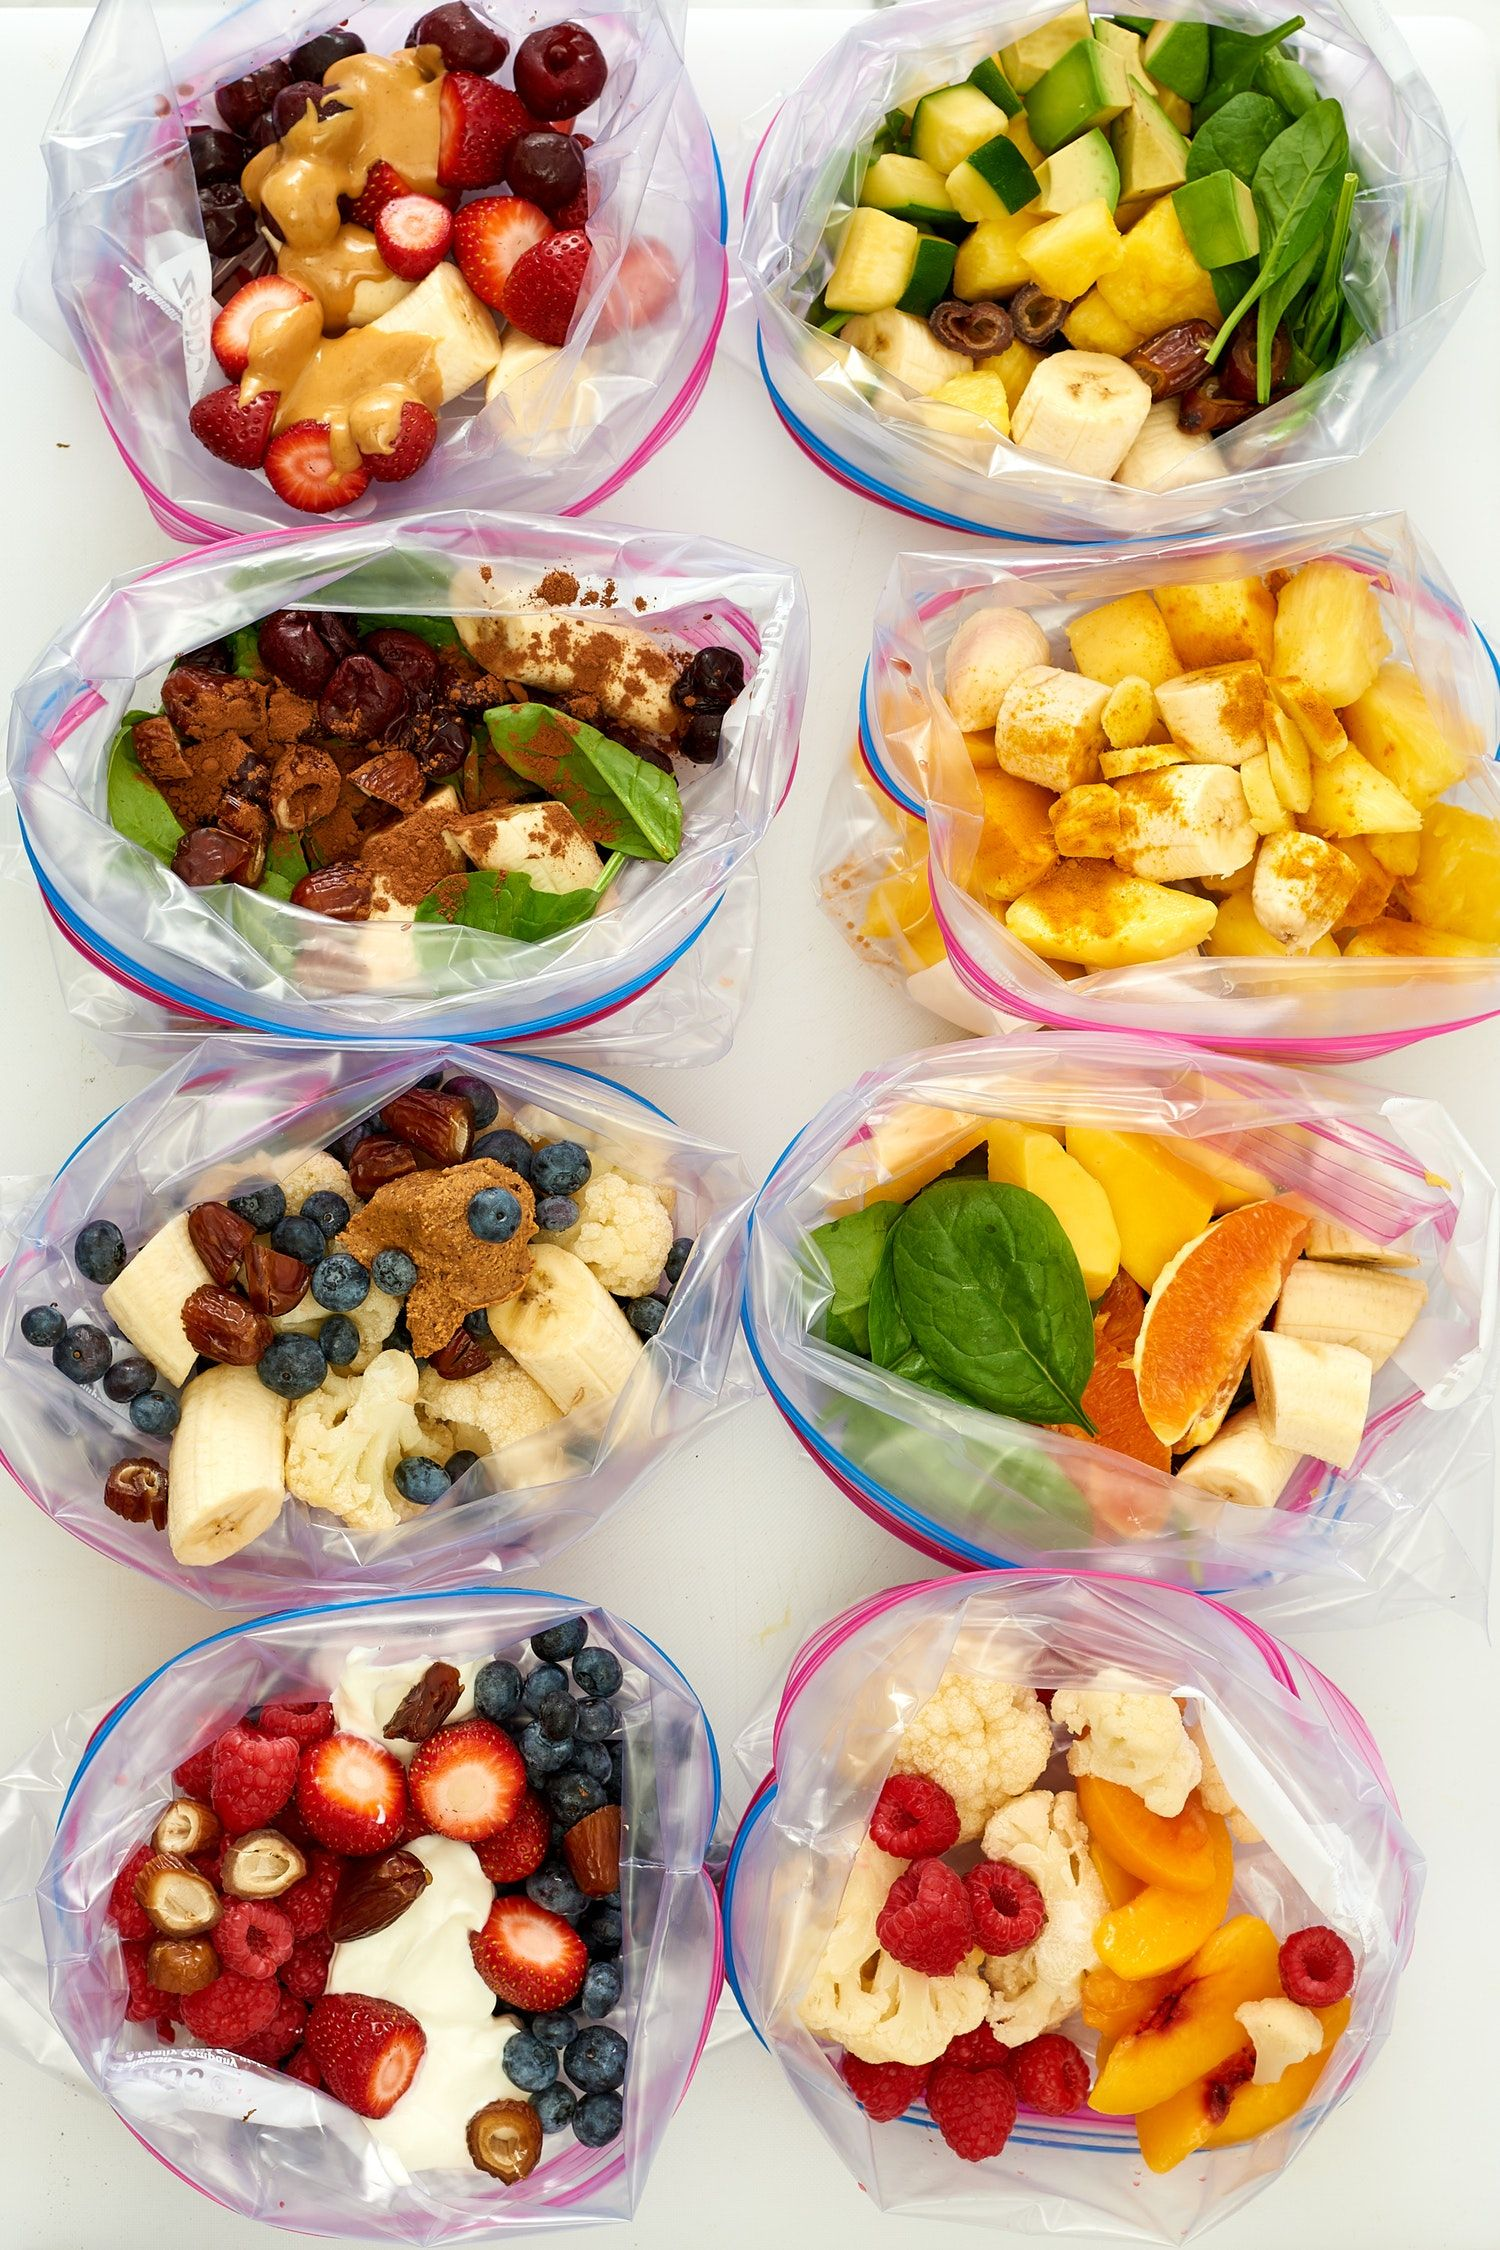 Photo of 5 Smoothie Kits for a Week of Make-Ahead Breakfasts